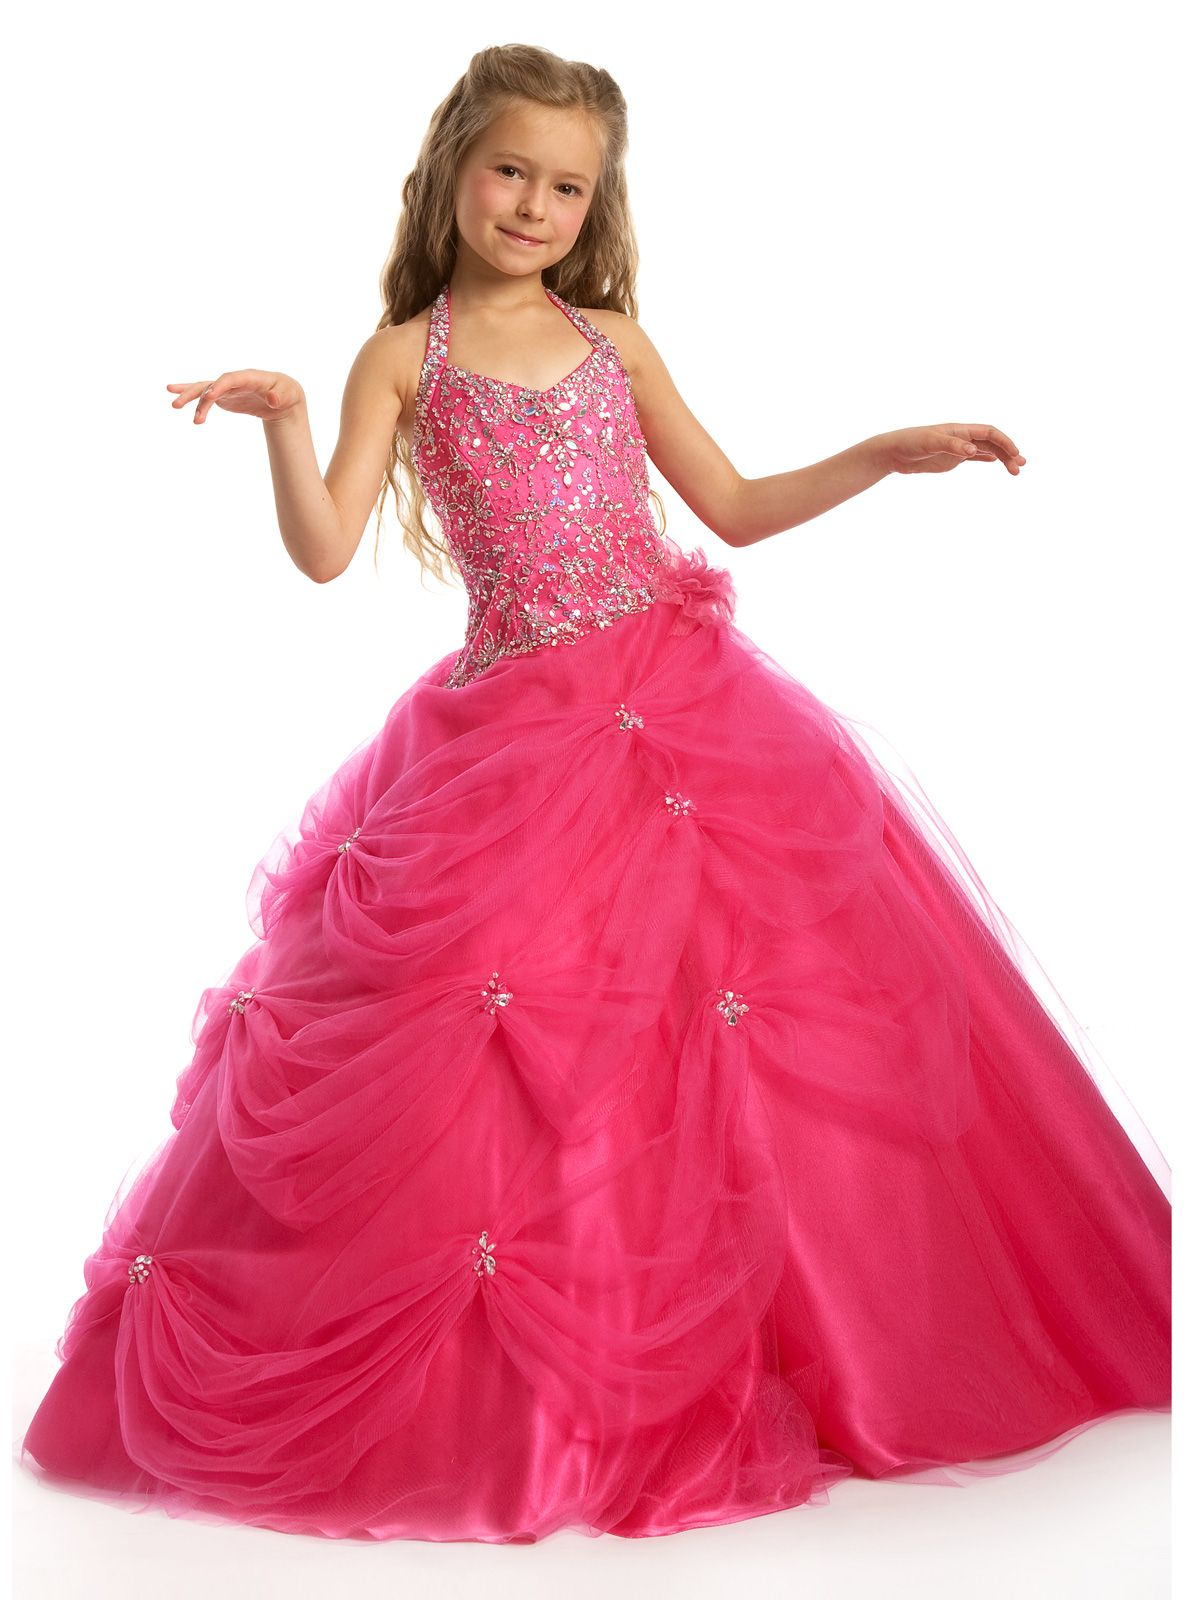 hot pink brides maid dresses for girls | Hot Pink Little Girls ...